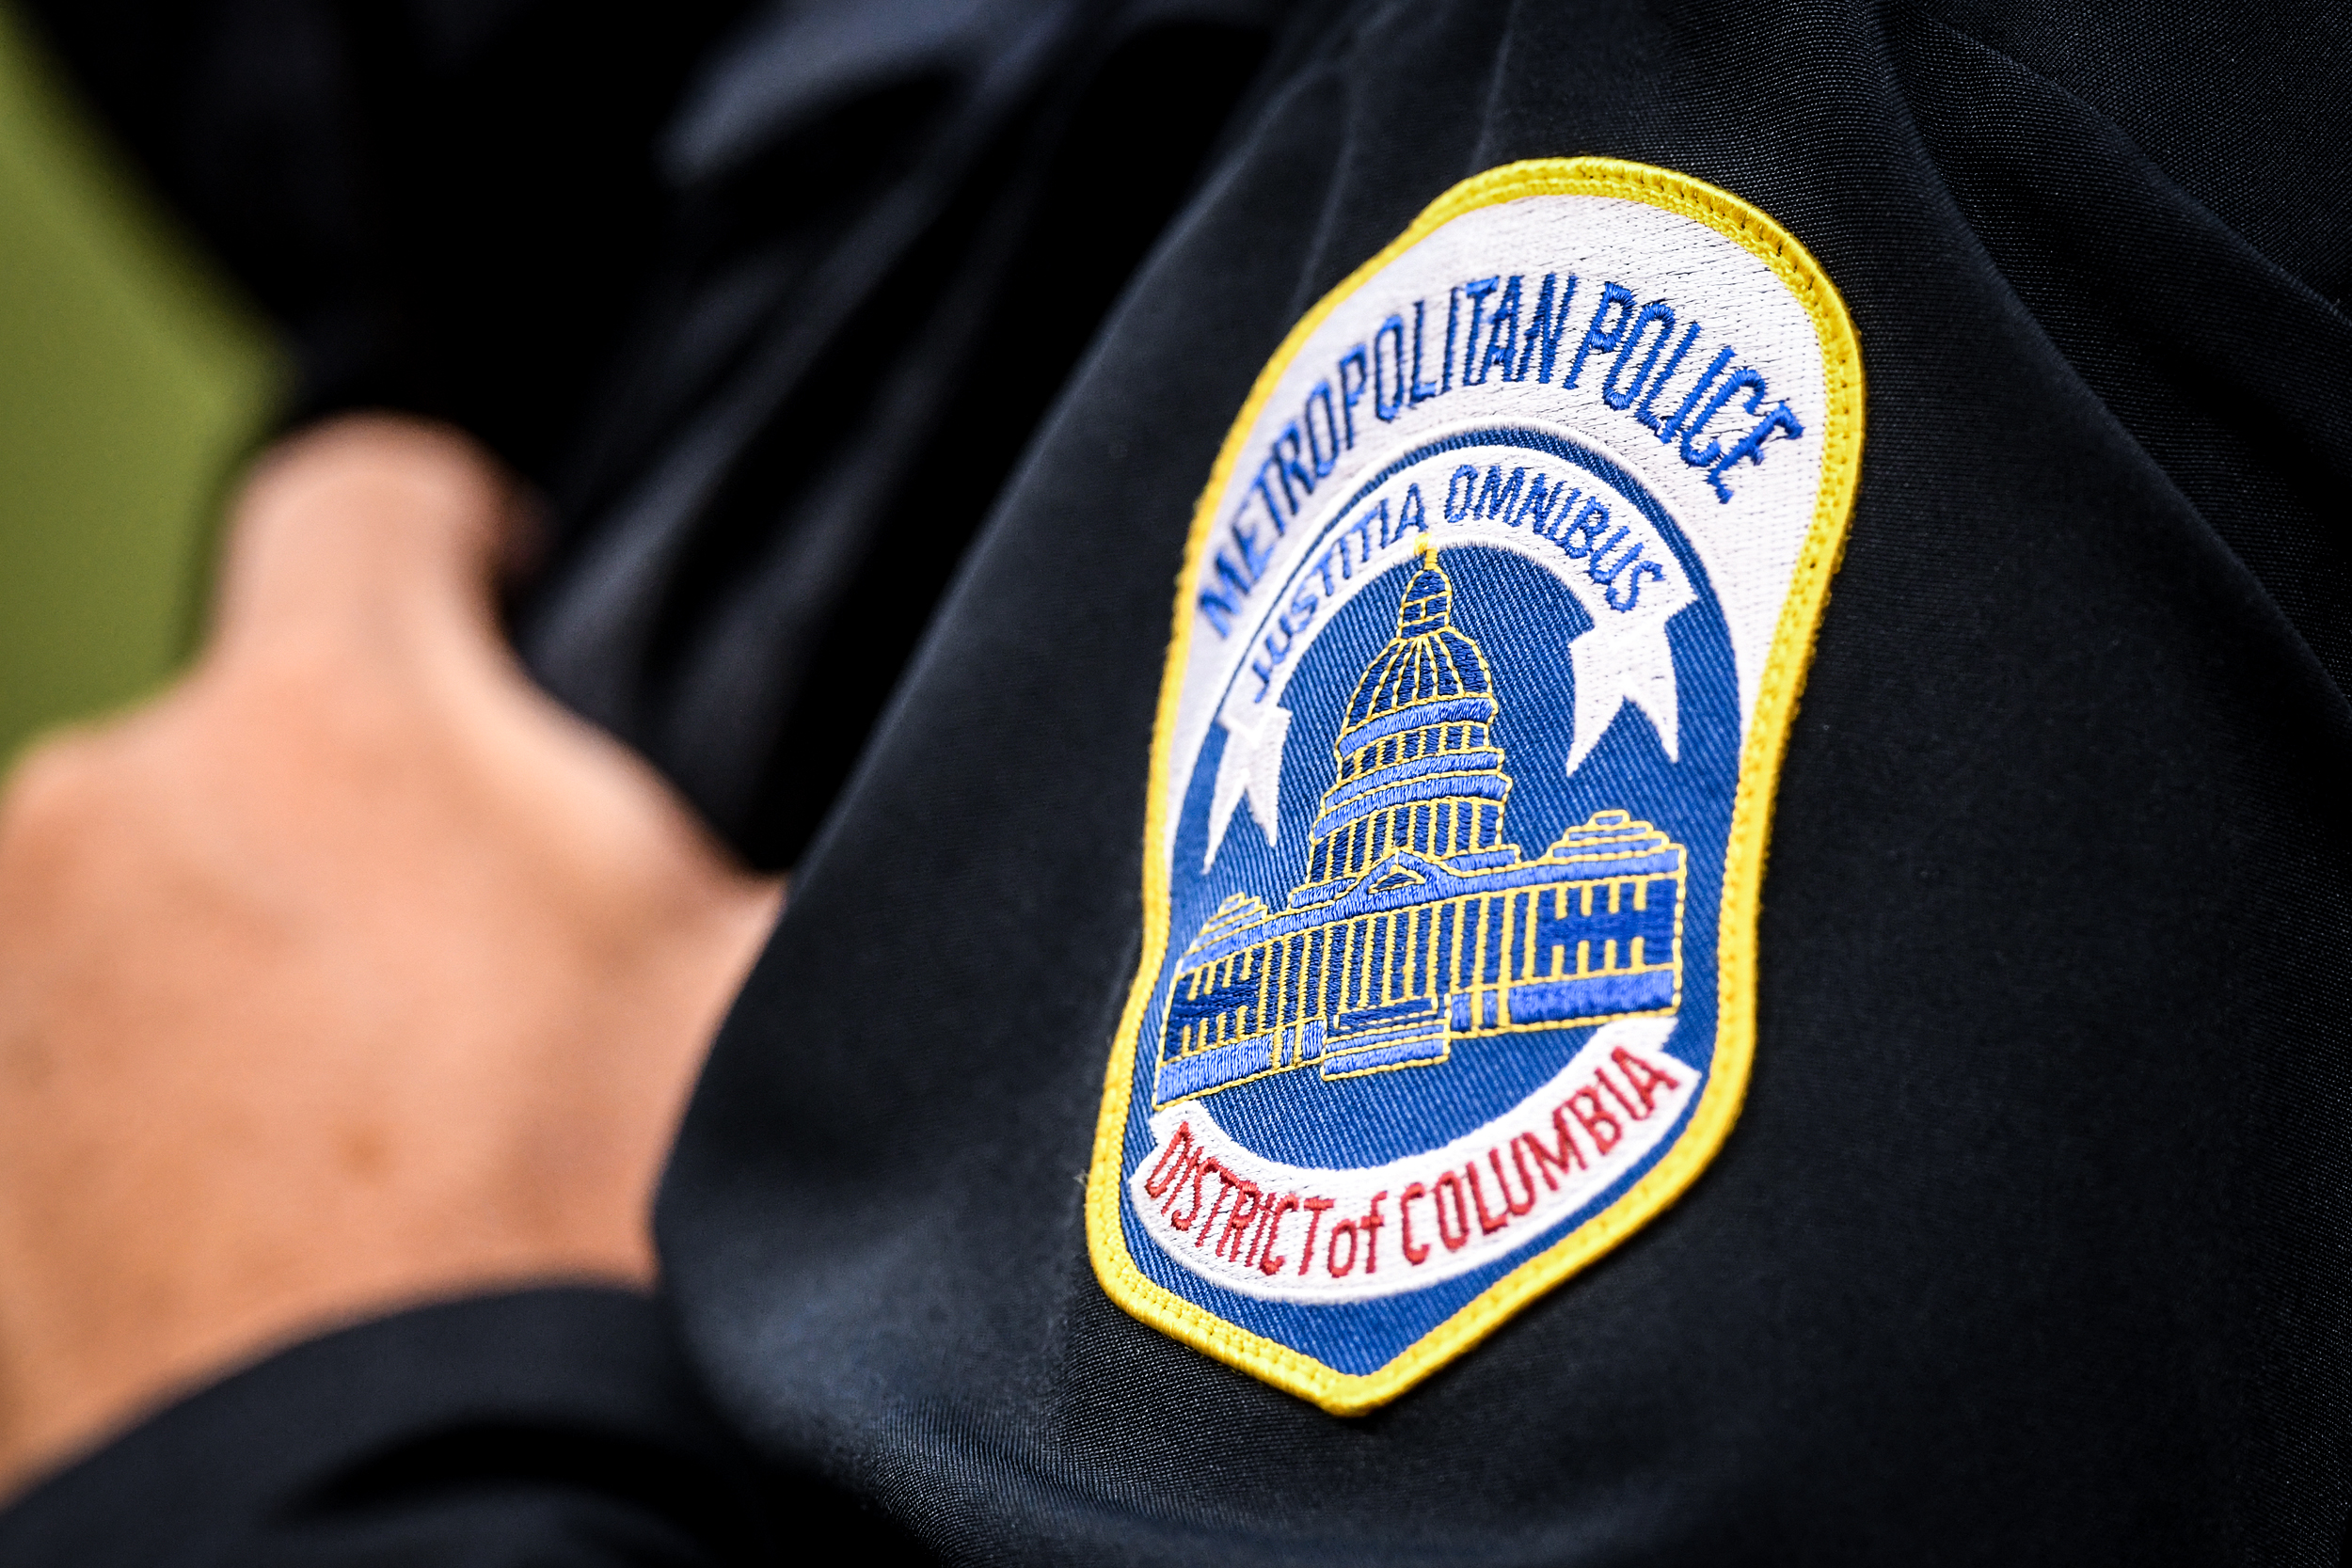 3 DC officers under investigation over video showing police punching a man